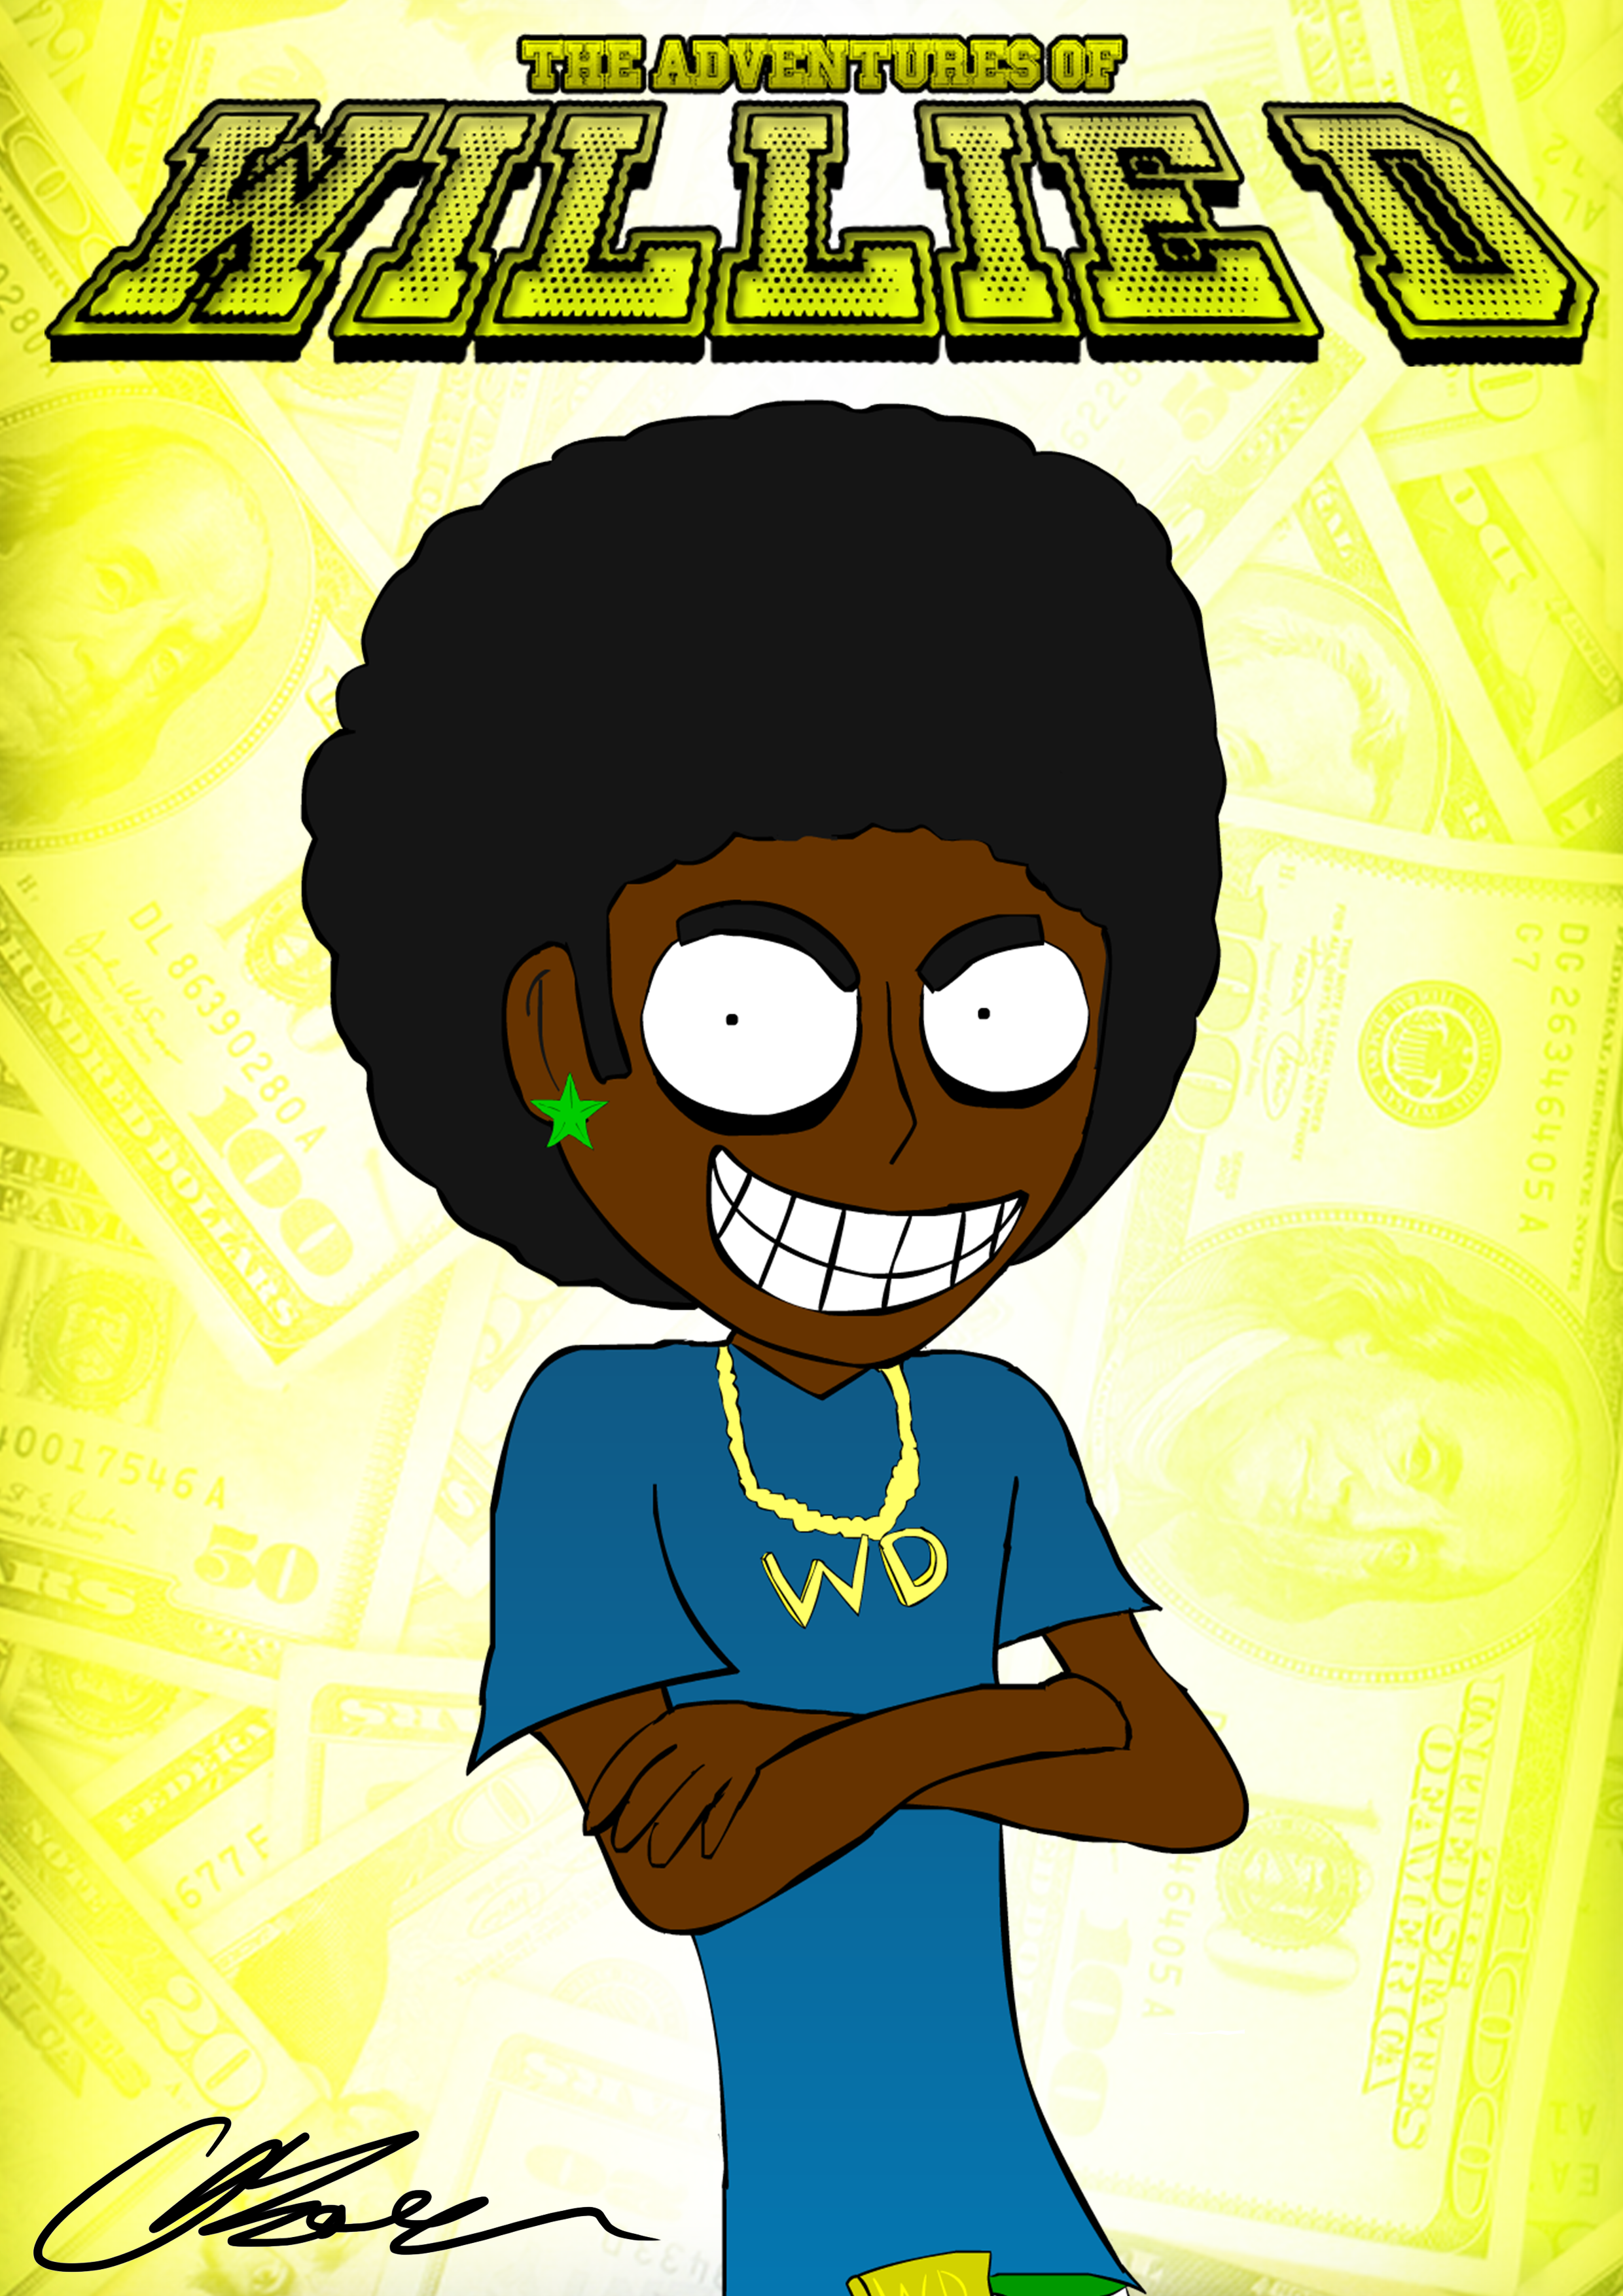 Willie-D Poster